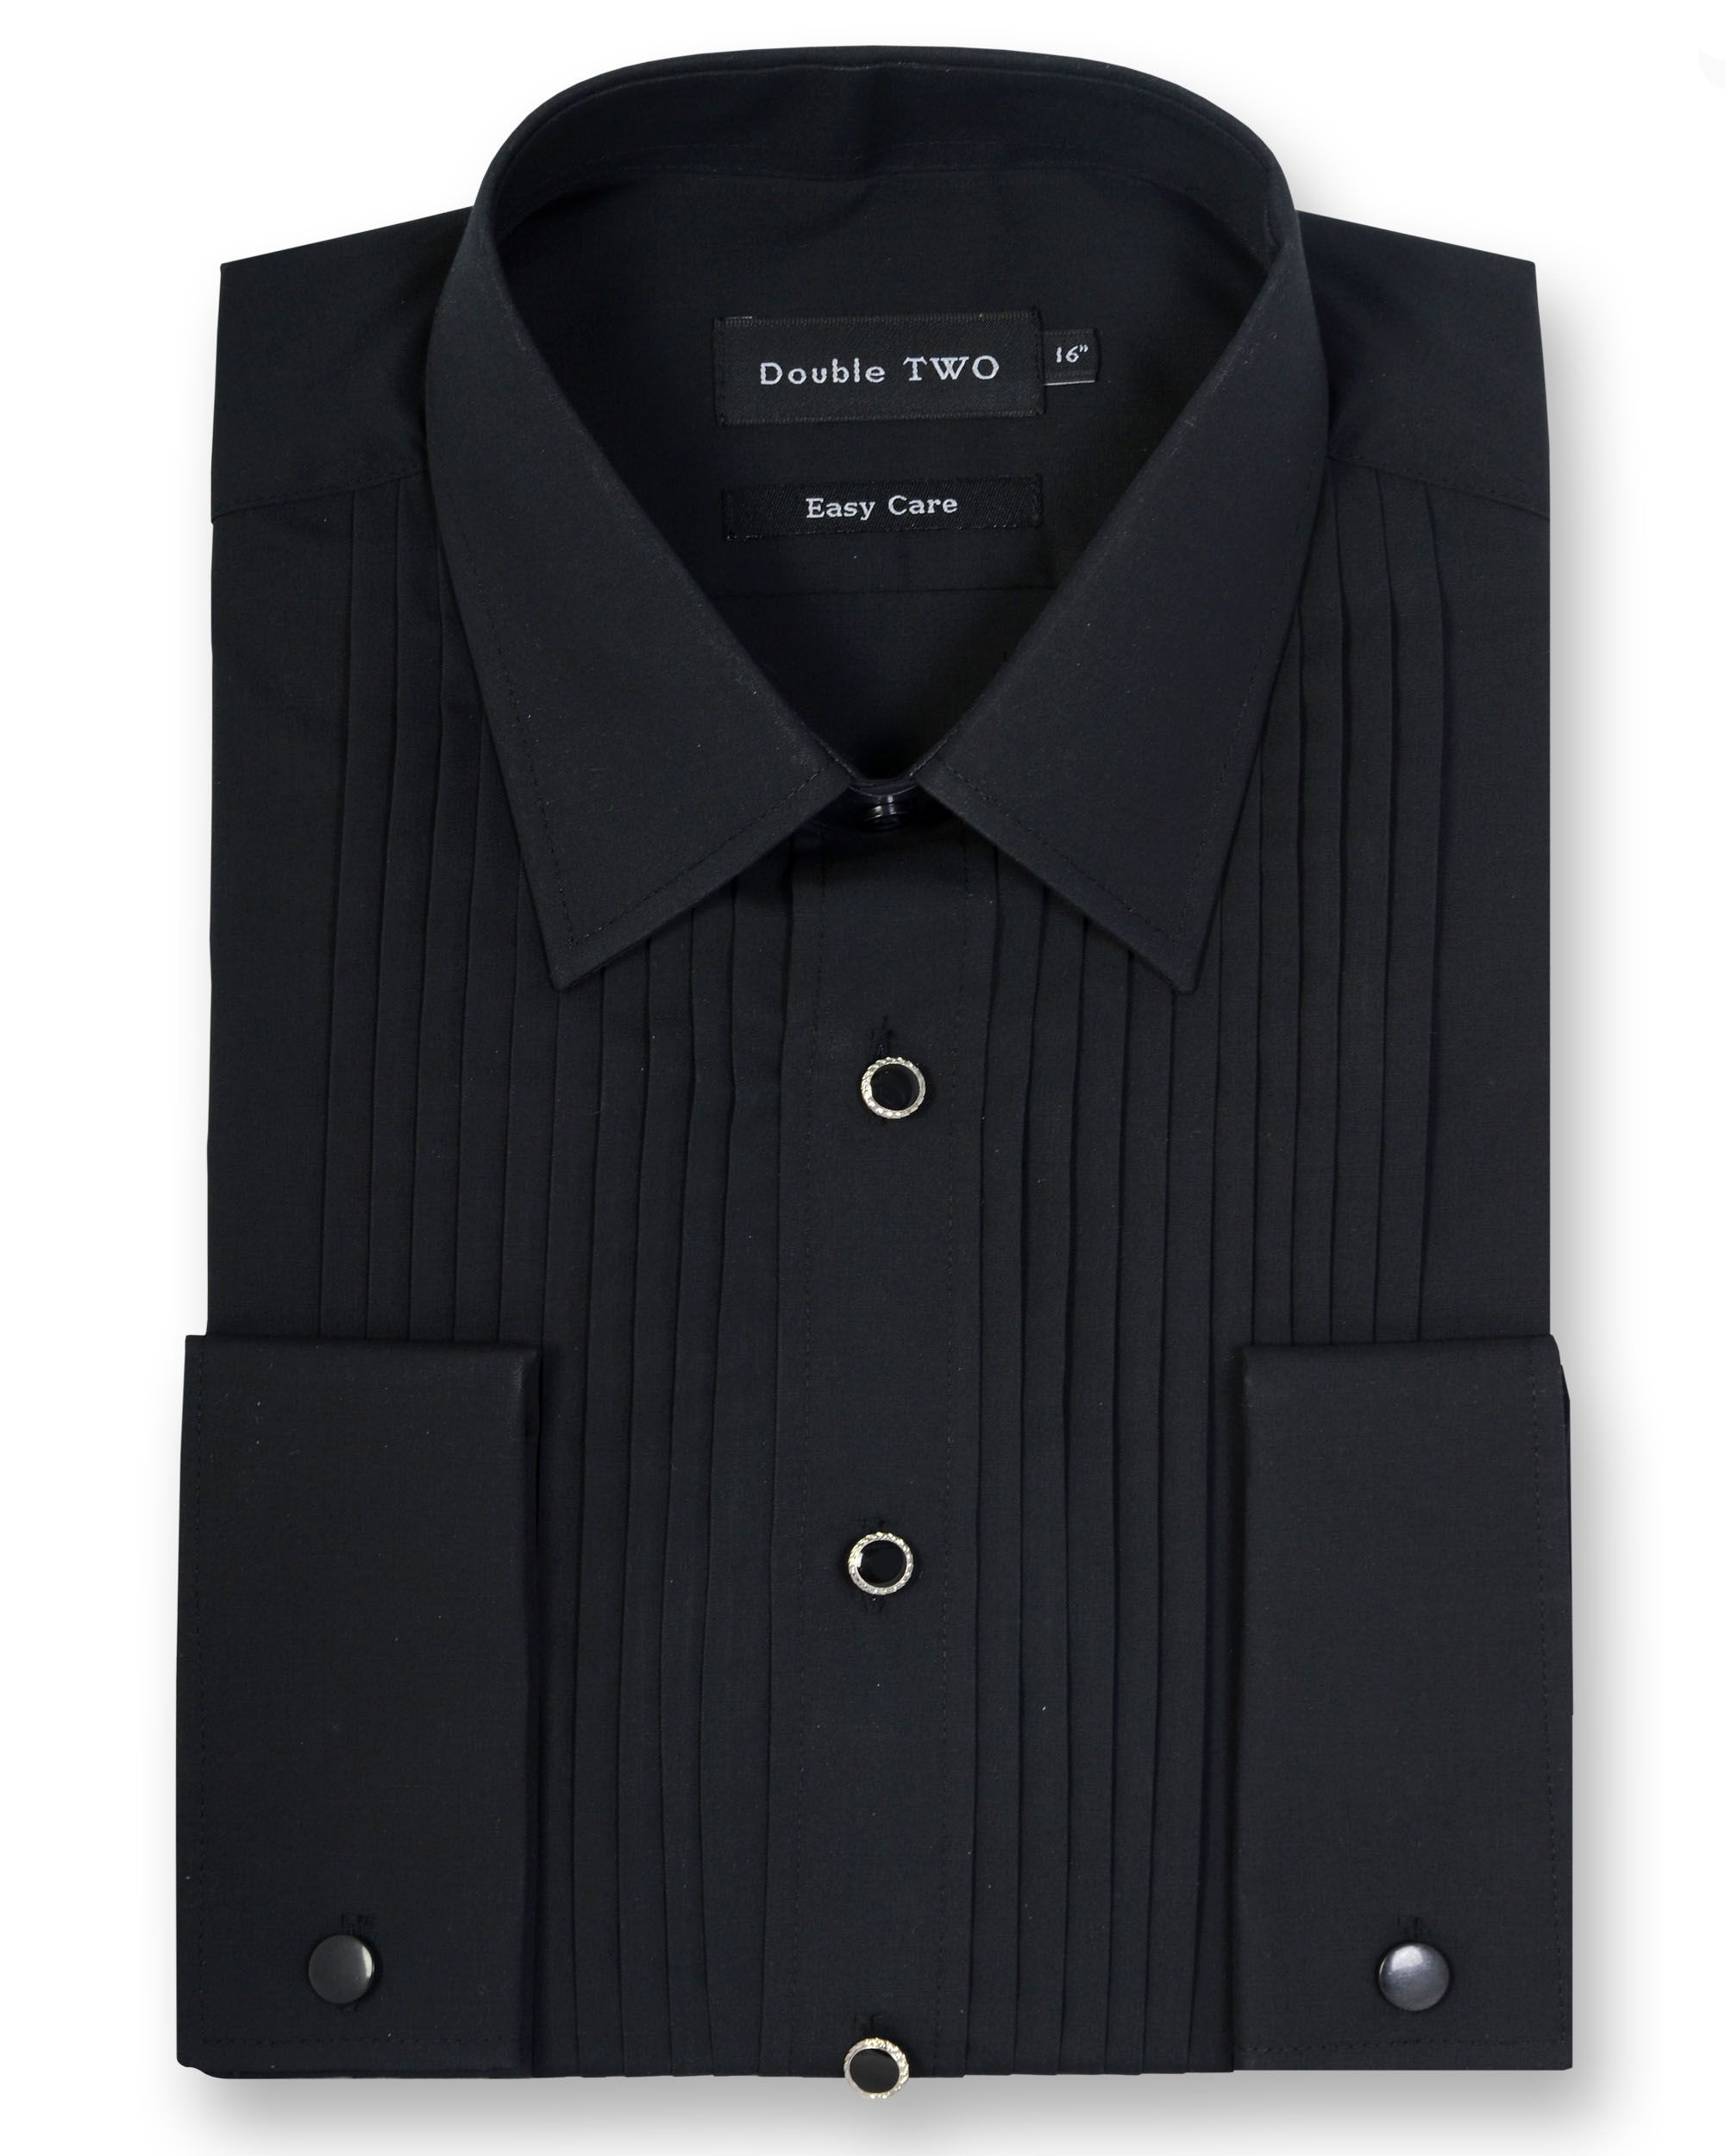 Mens Double TWO King Size Classic Stitch Pleat Dress Shirt Black